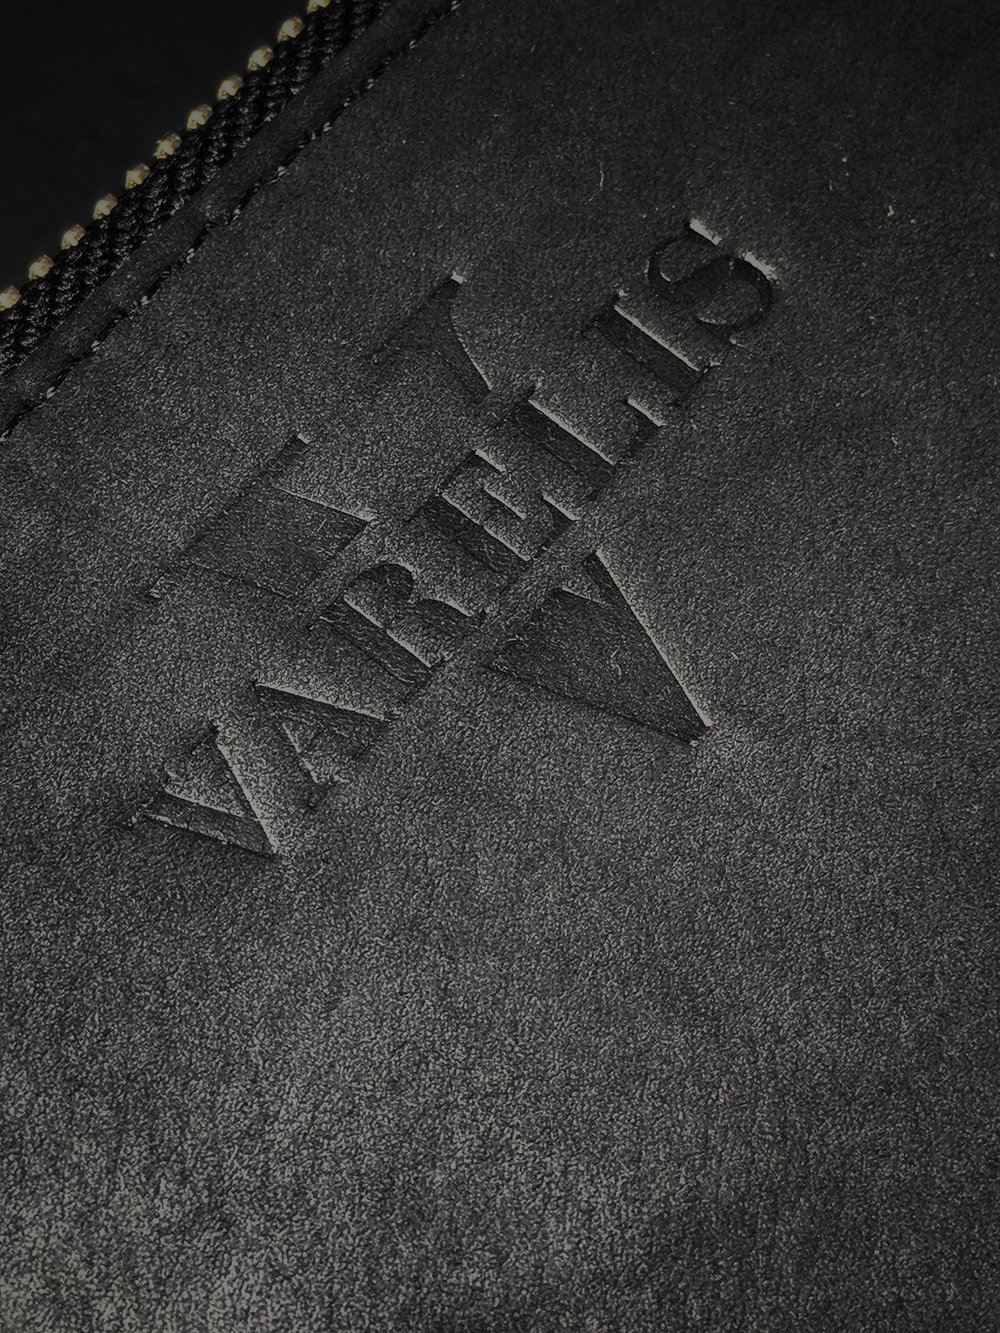 MakeCyber Security Personal - With the Varelis Cyber Security Concierge